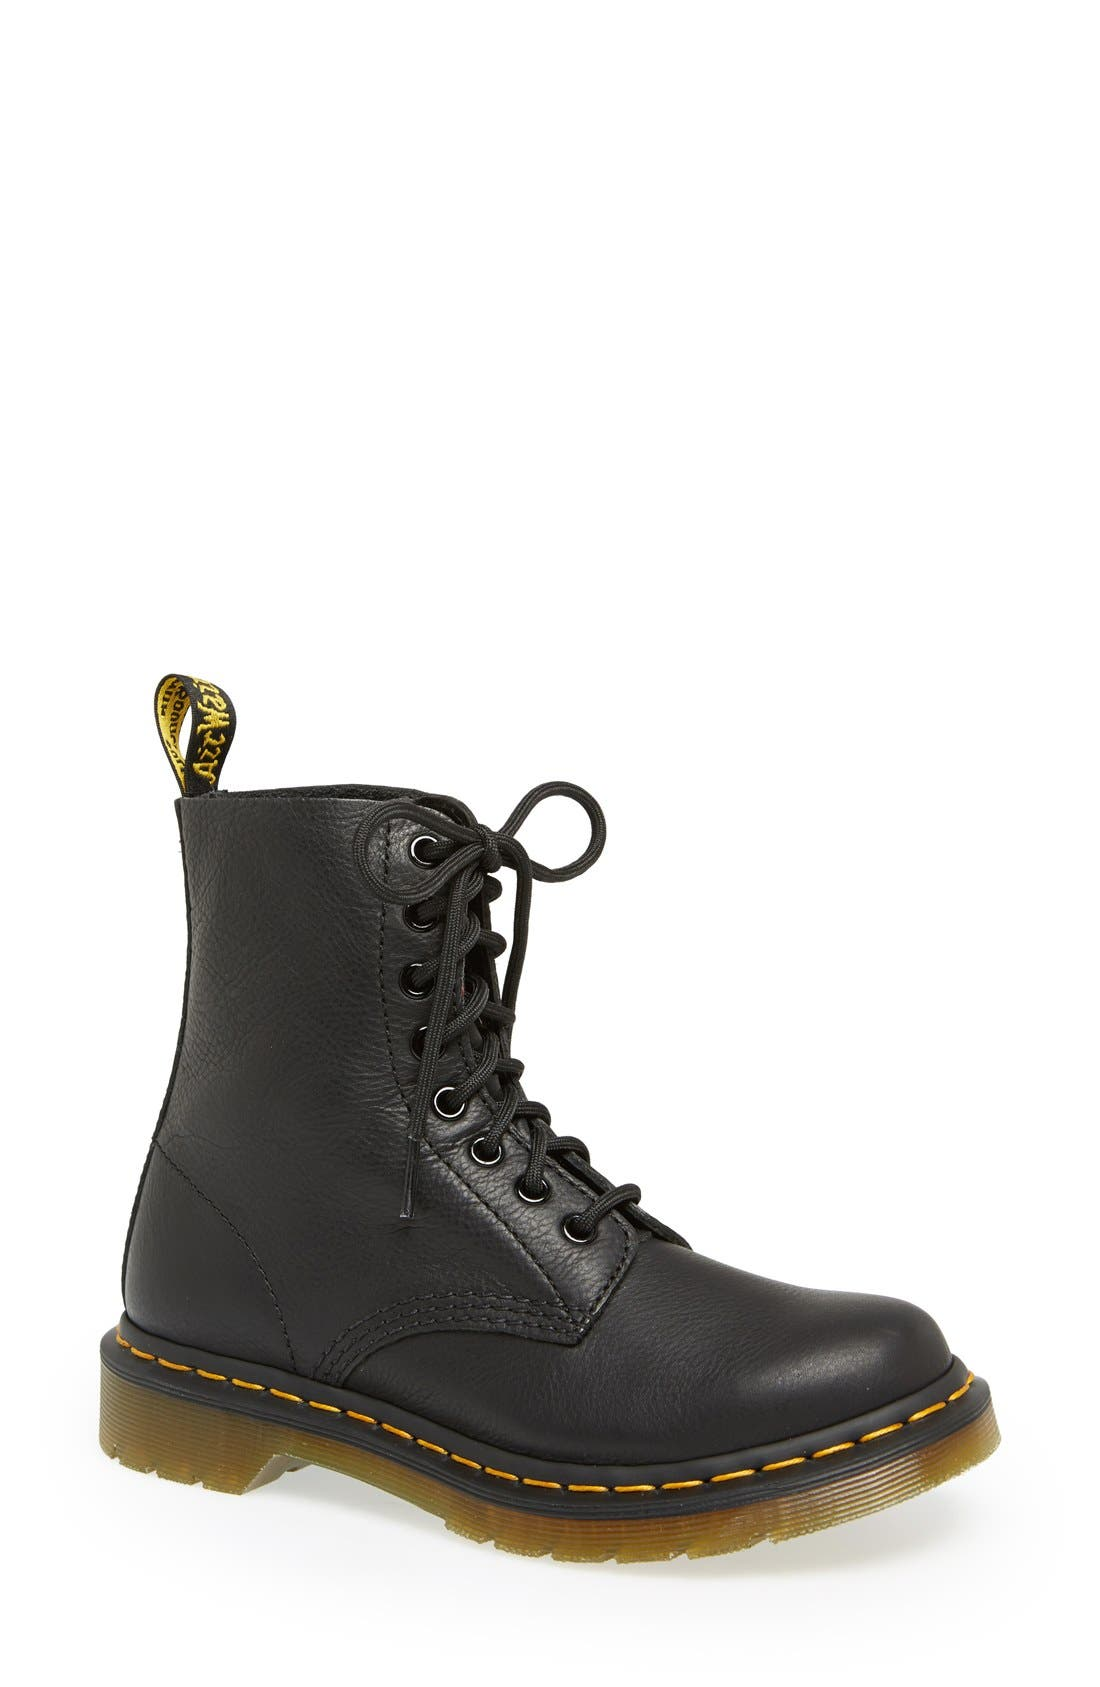 1460 Boots by Dr. Marten, available on nordstrom.com for $150 Bella Hadid Shoes Exact Product